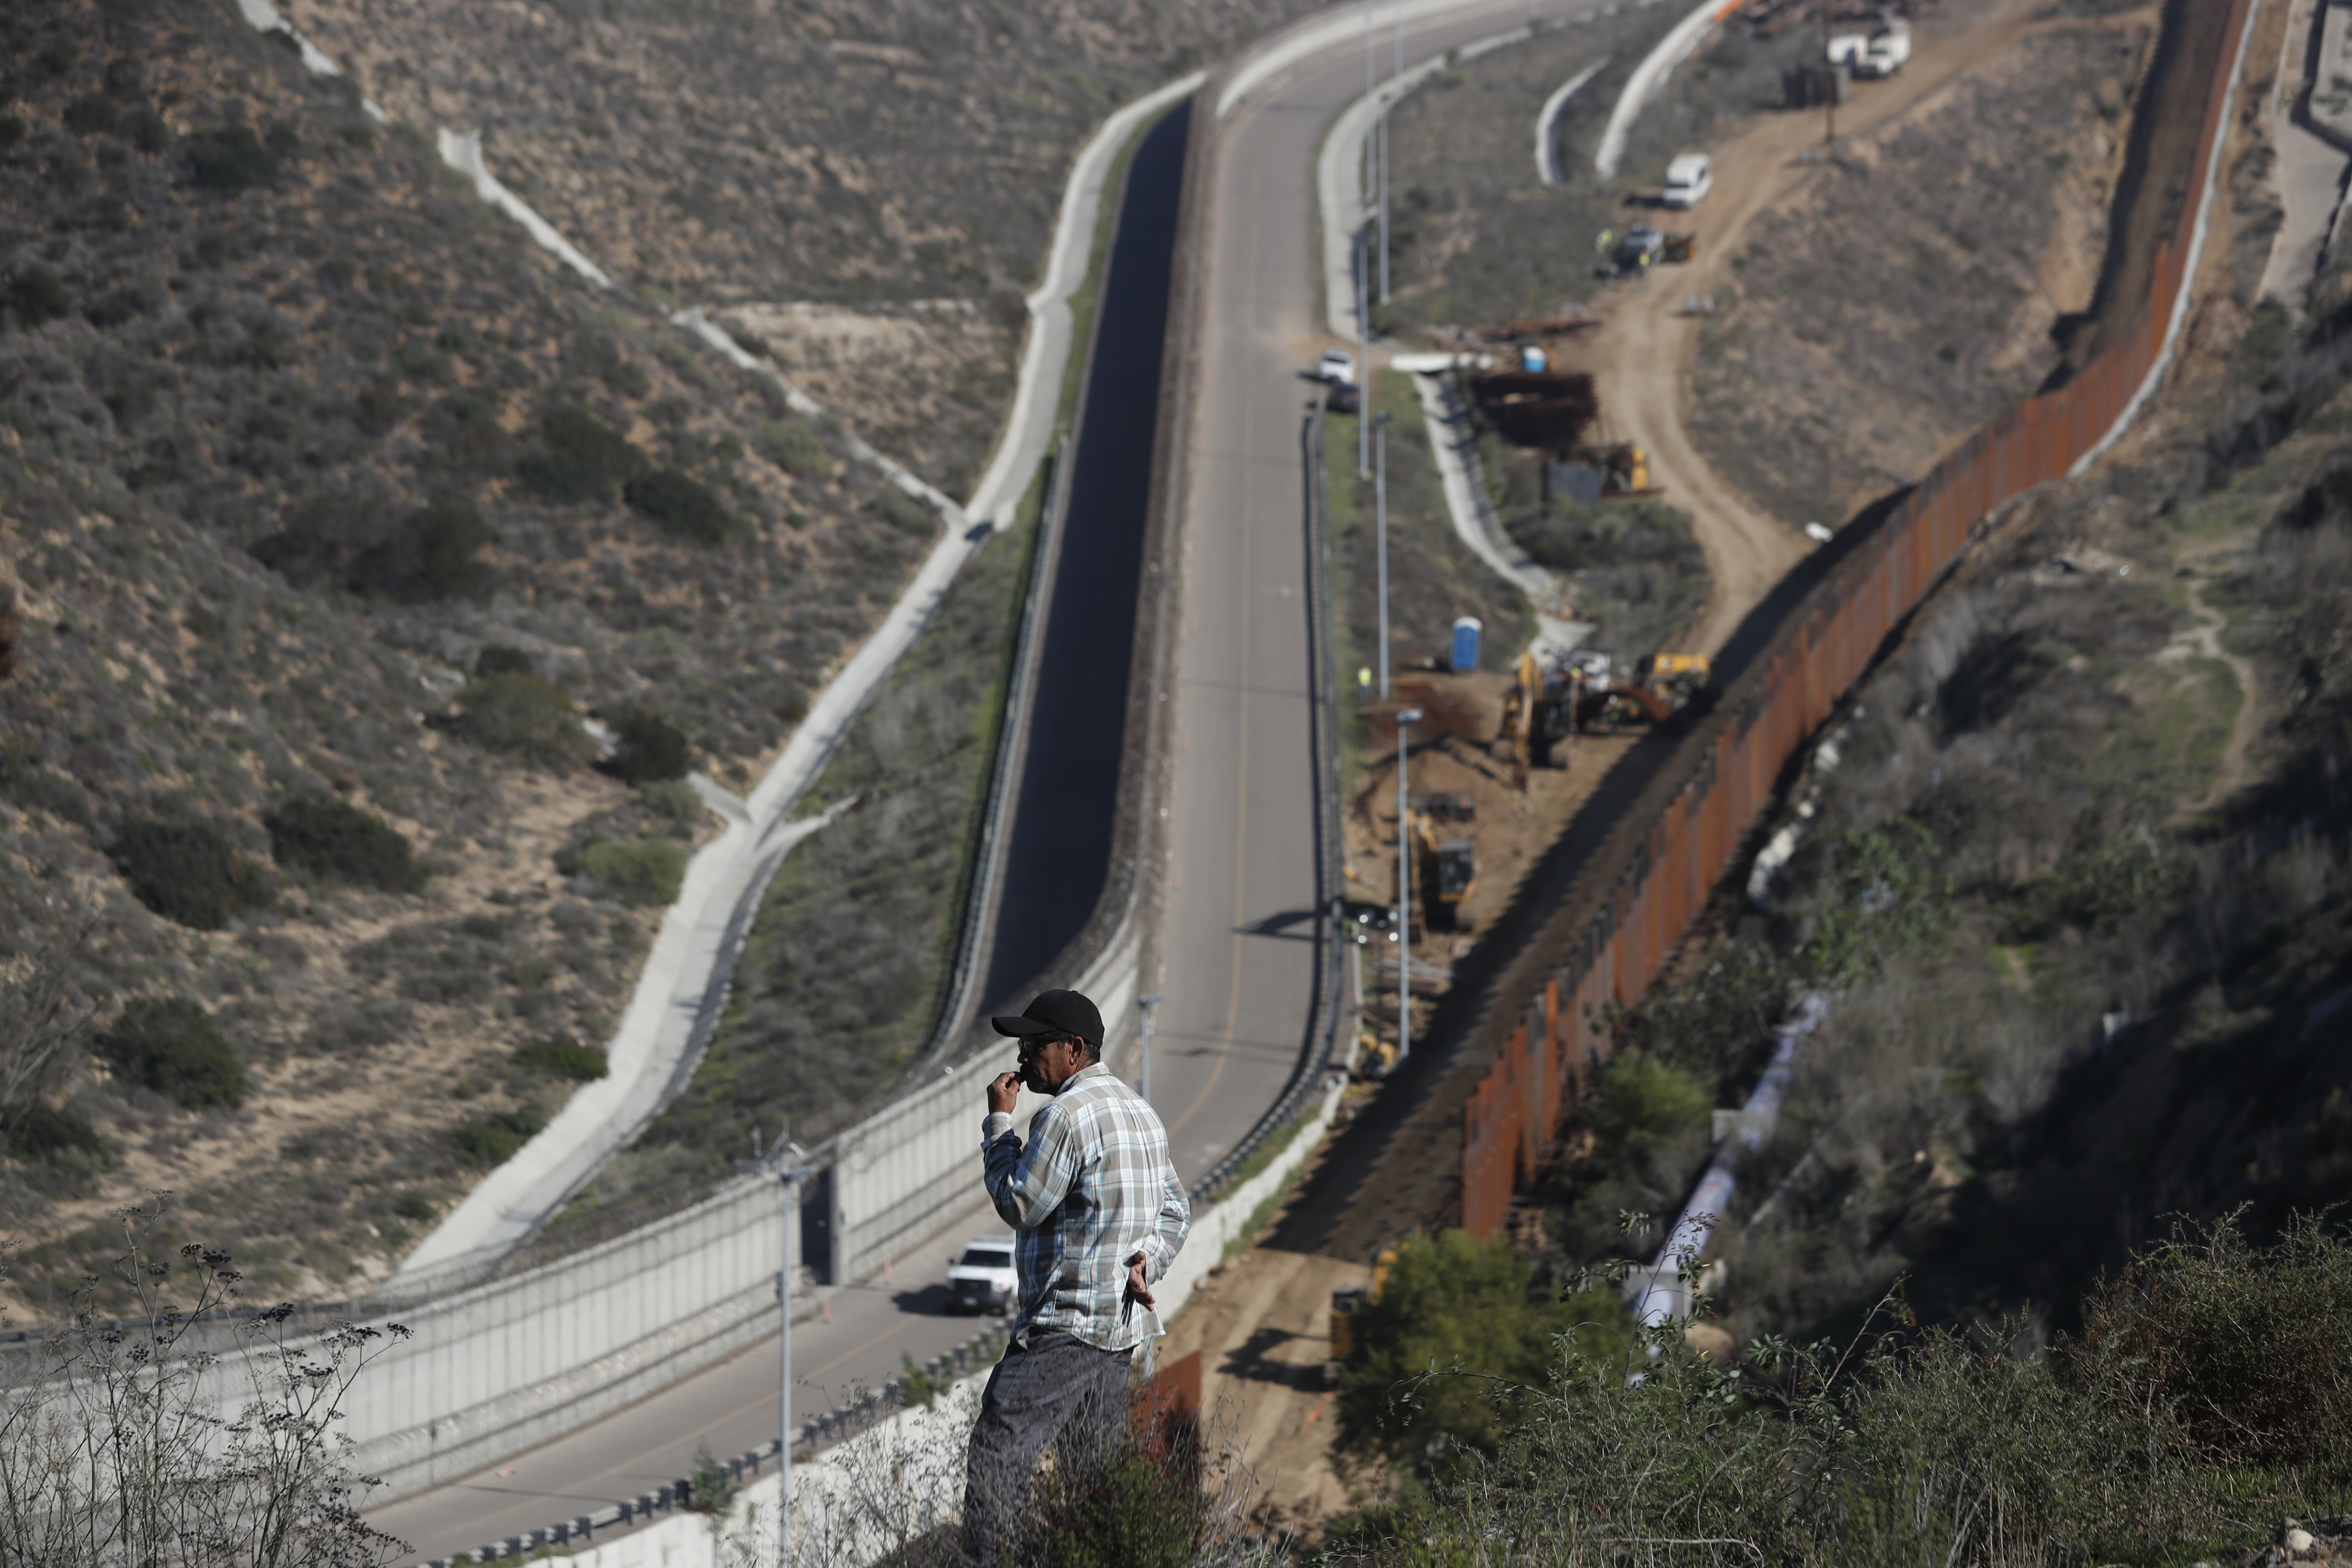 A man looks out at the U.S. border where workers are replacing parts of the U.S. border wall for a higher one, in Tijuana, Mexico, Dec. 19, 2018.